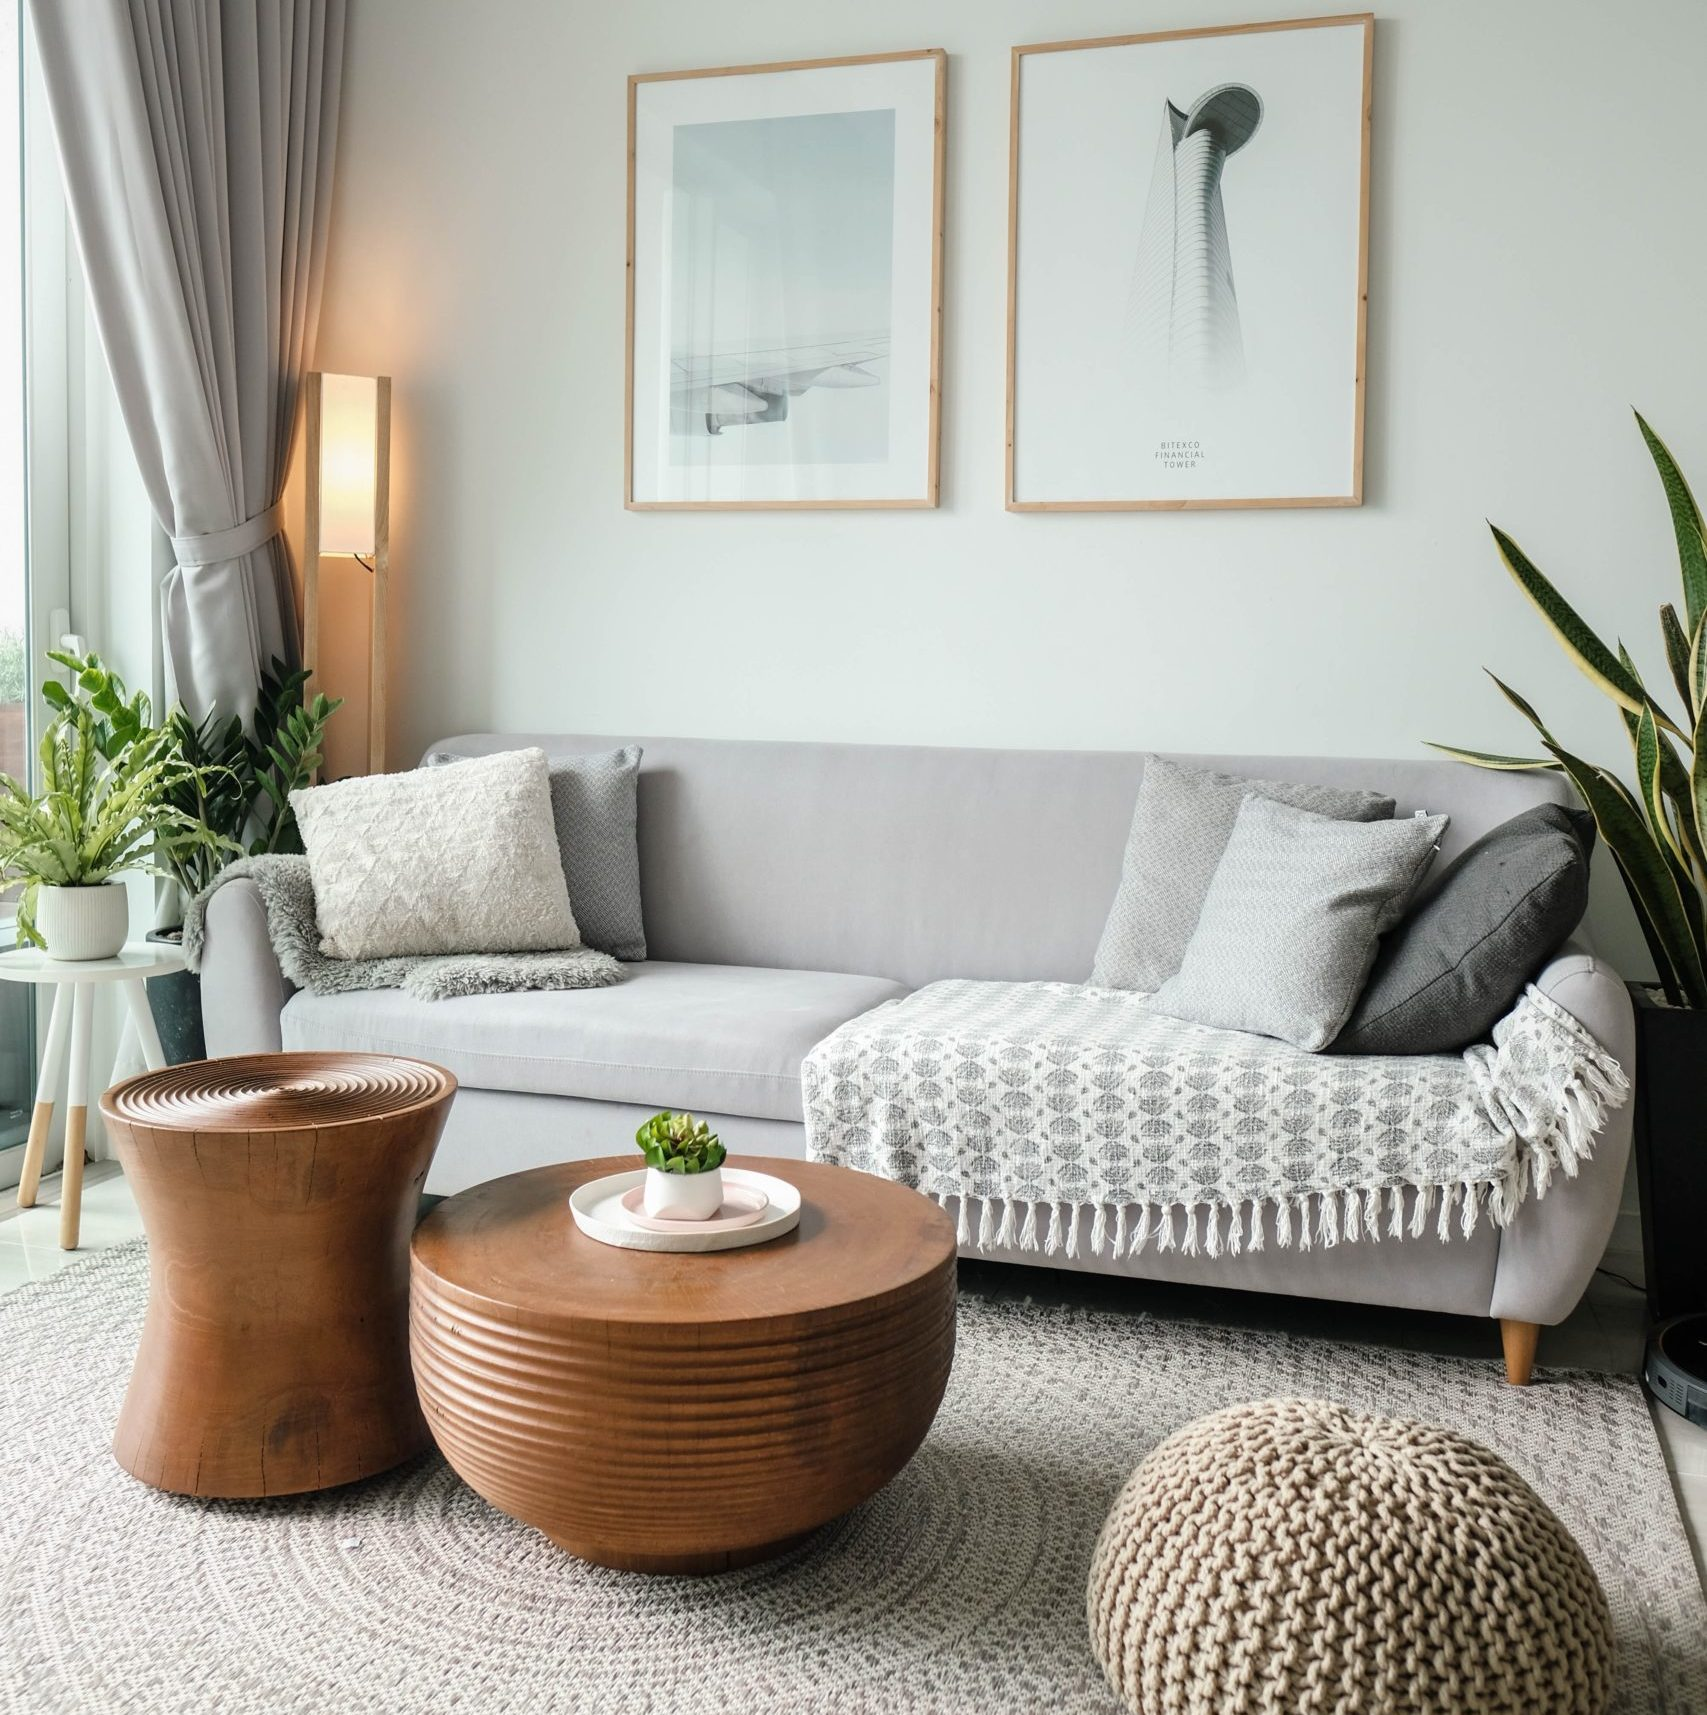 How to accessorise without adding clutter 1